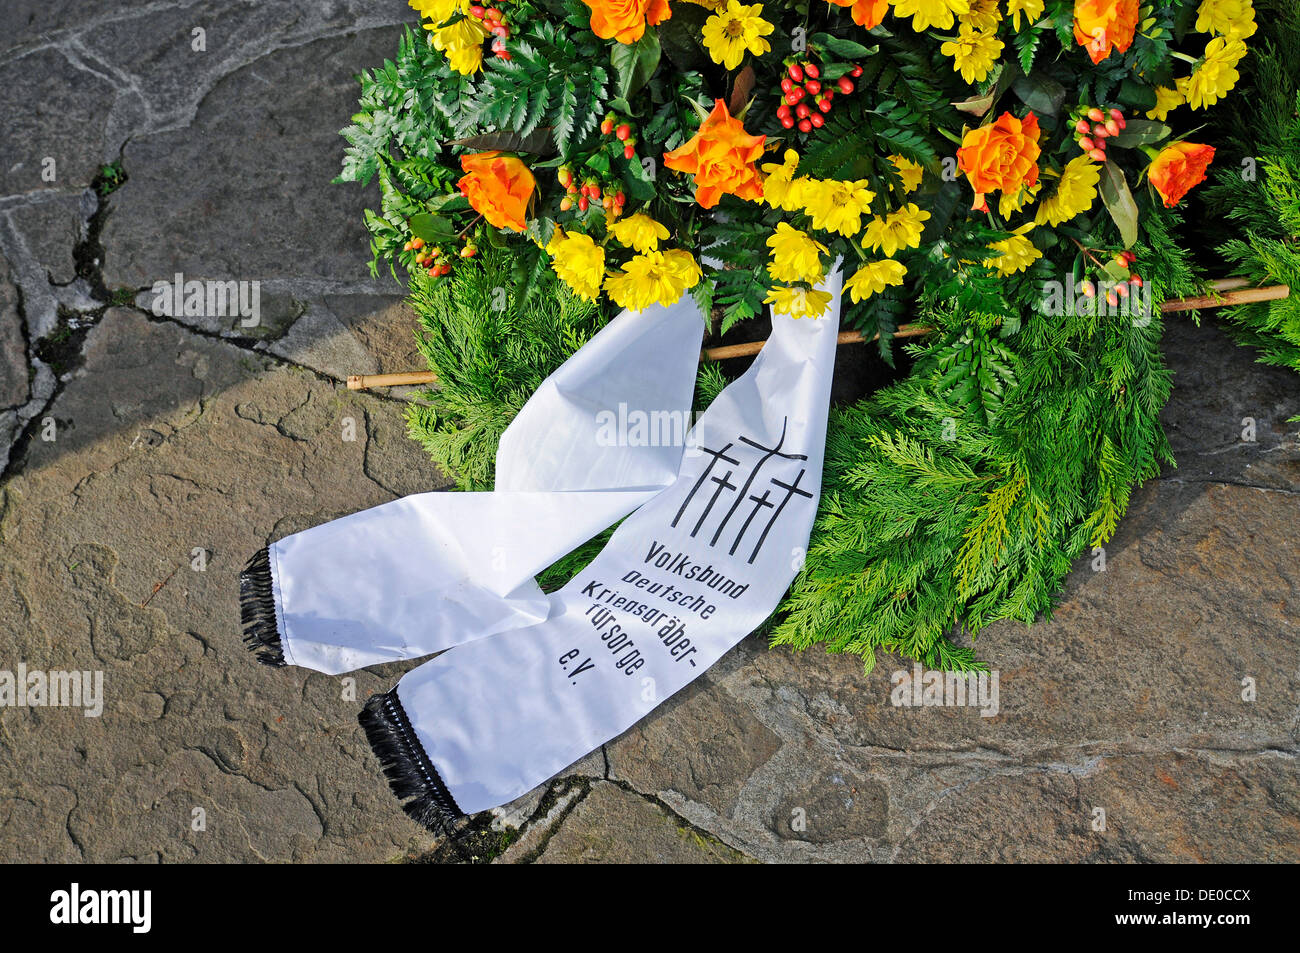 German War Graves Commission, wreath laying, memorial day, war memorial, Beckum, Muensterland region, North Rhine-Westphalia - Stock Image